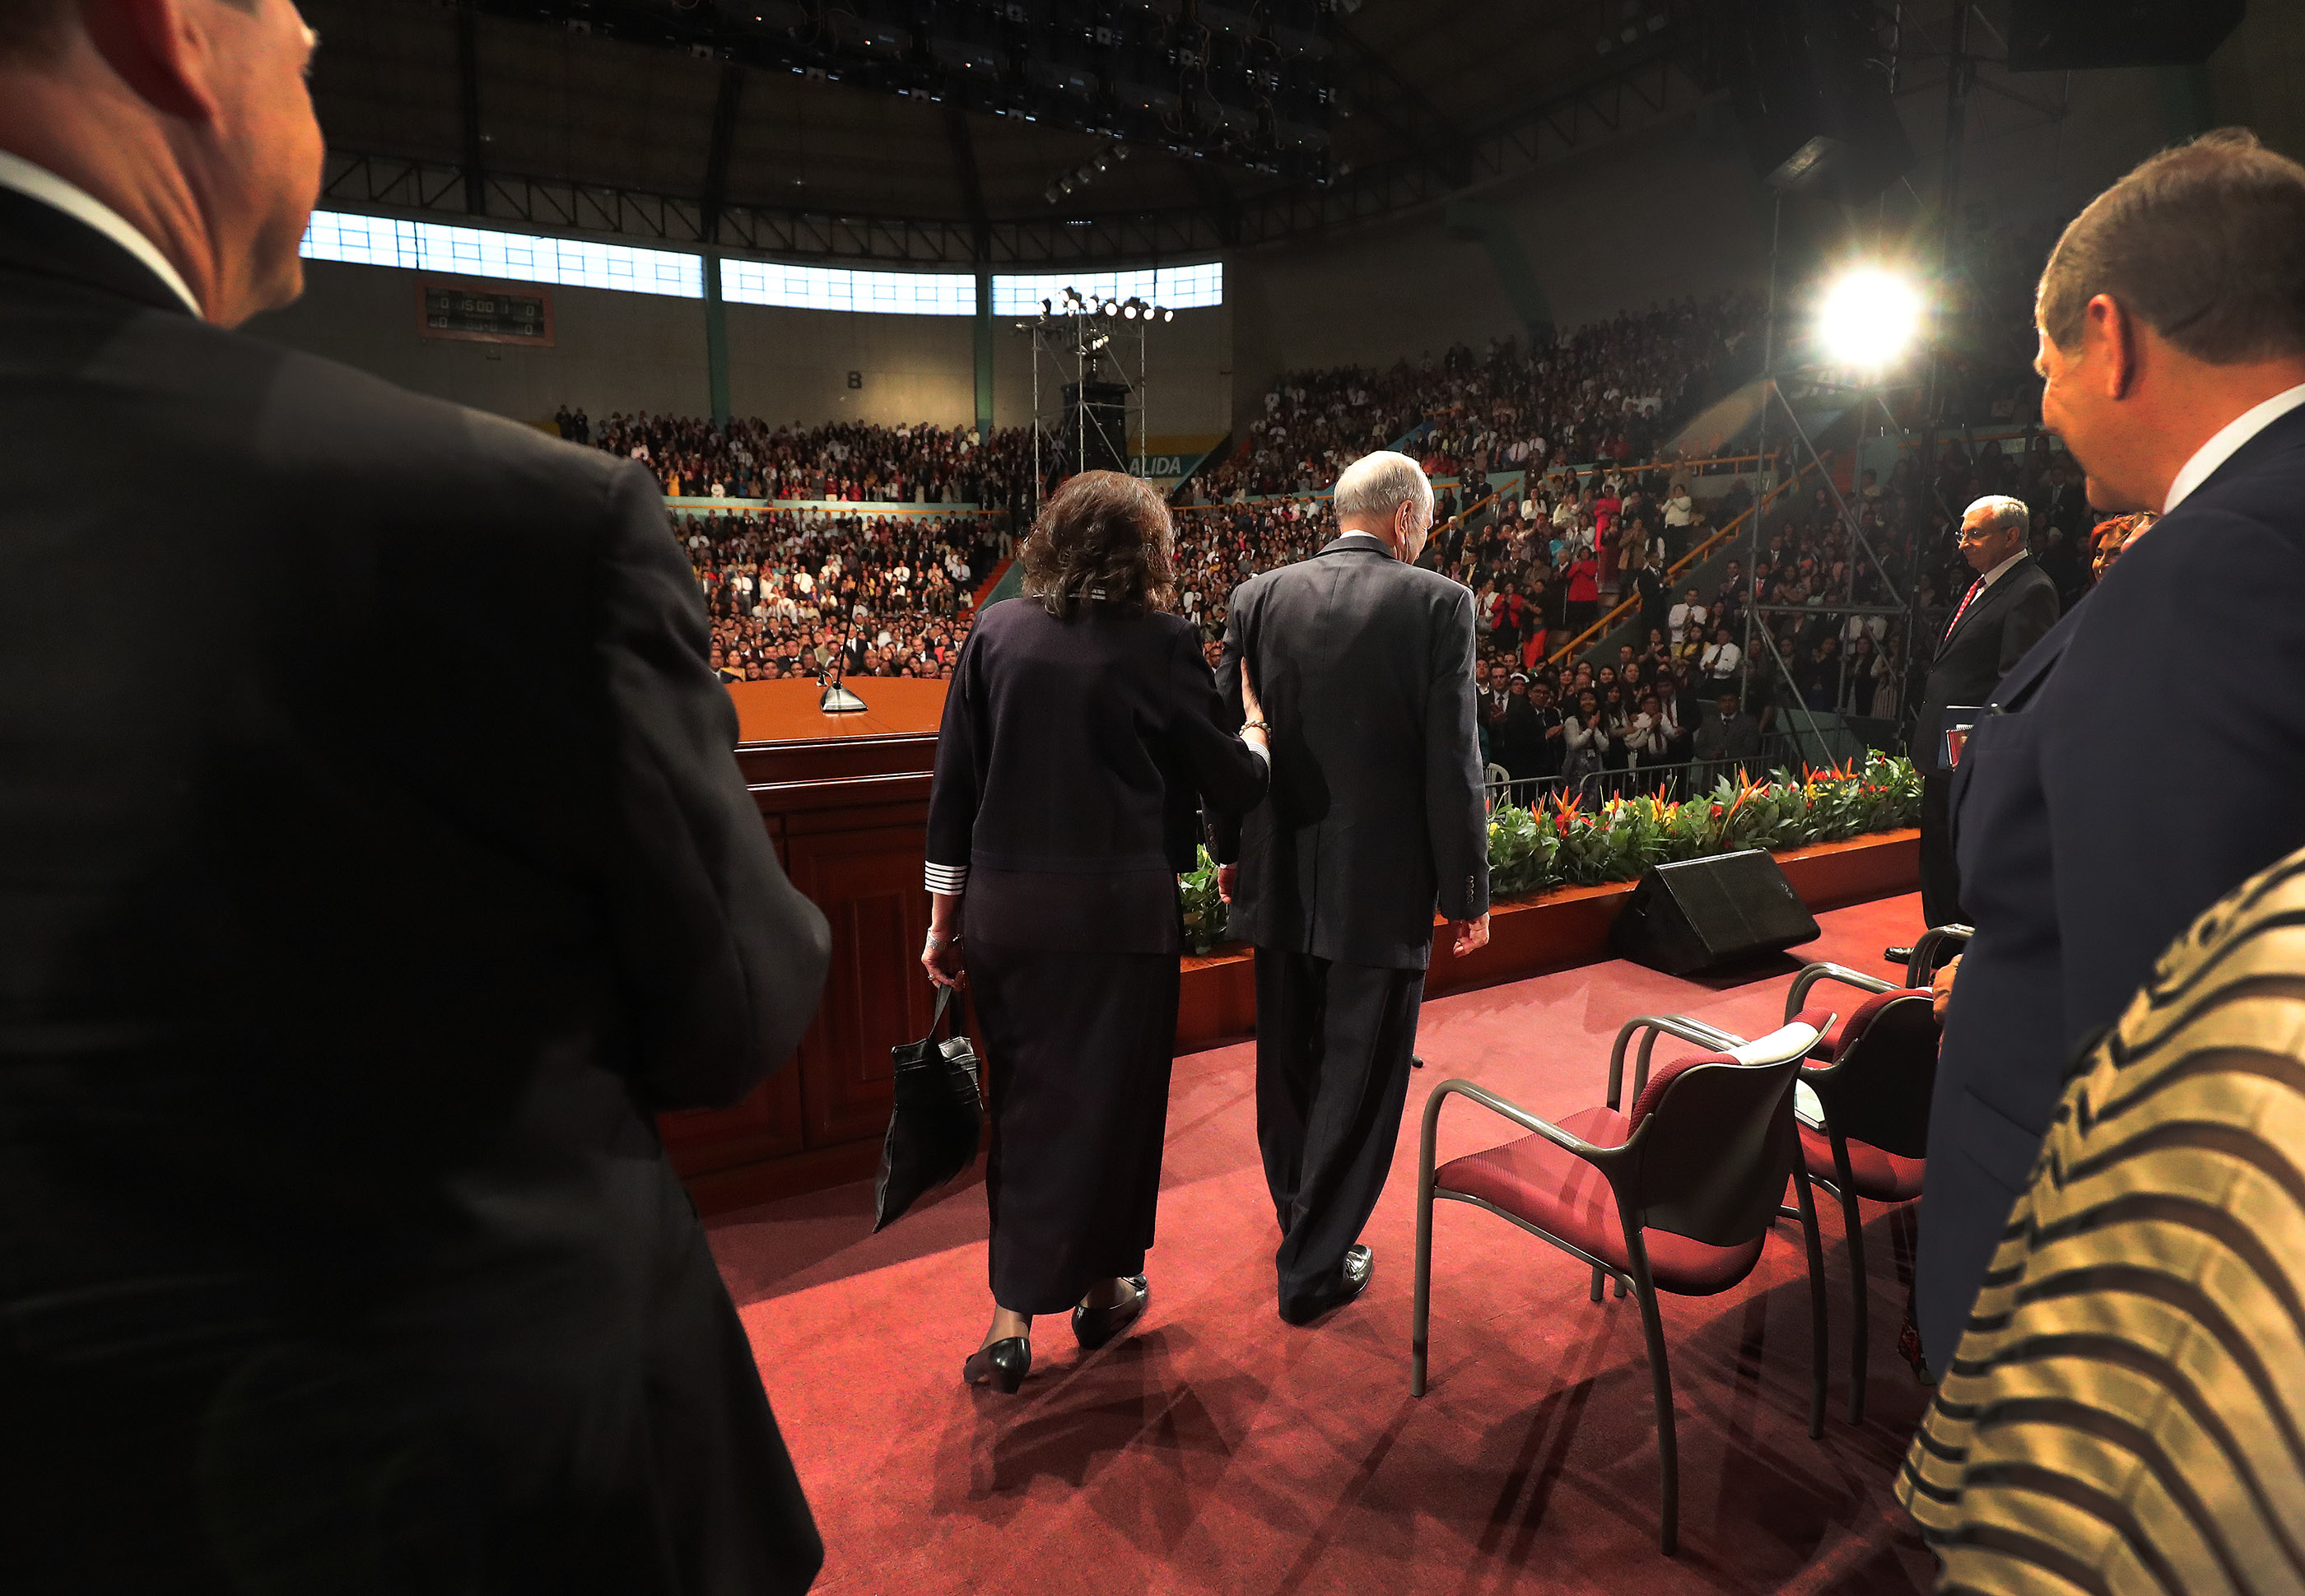 President Russell M. Nelson of The Church of Jesus Christ of Latter-day Saints walks with his wife, Sister Wendy Nelson, to the stage during a devotional meeting in Lima, Peru, on Oct. 20, 2018.